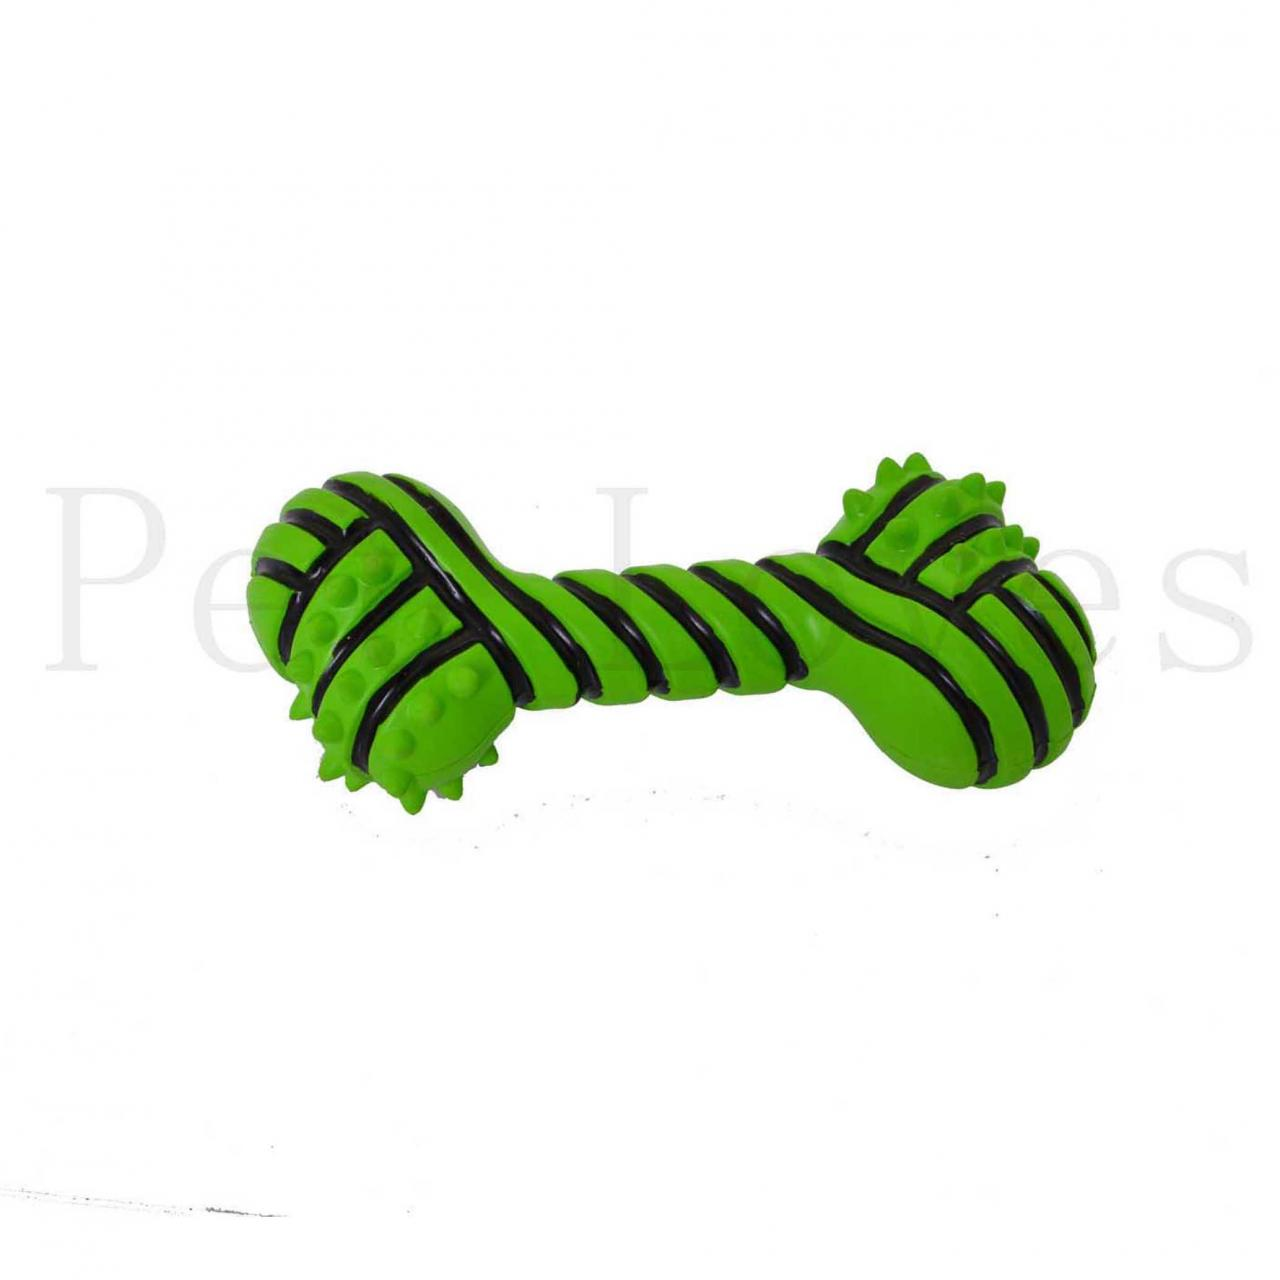 ODM/OEM Durable Rubber Toy